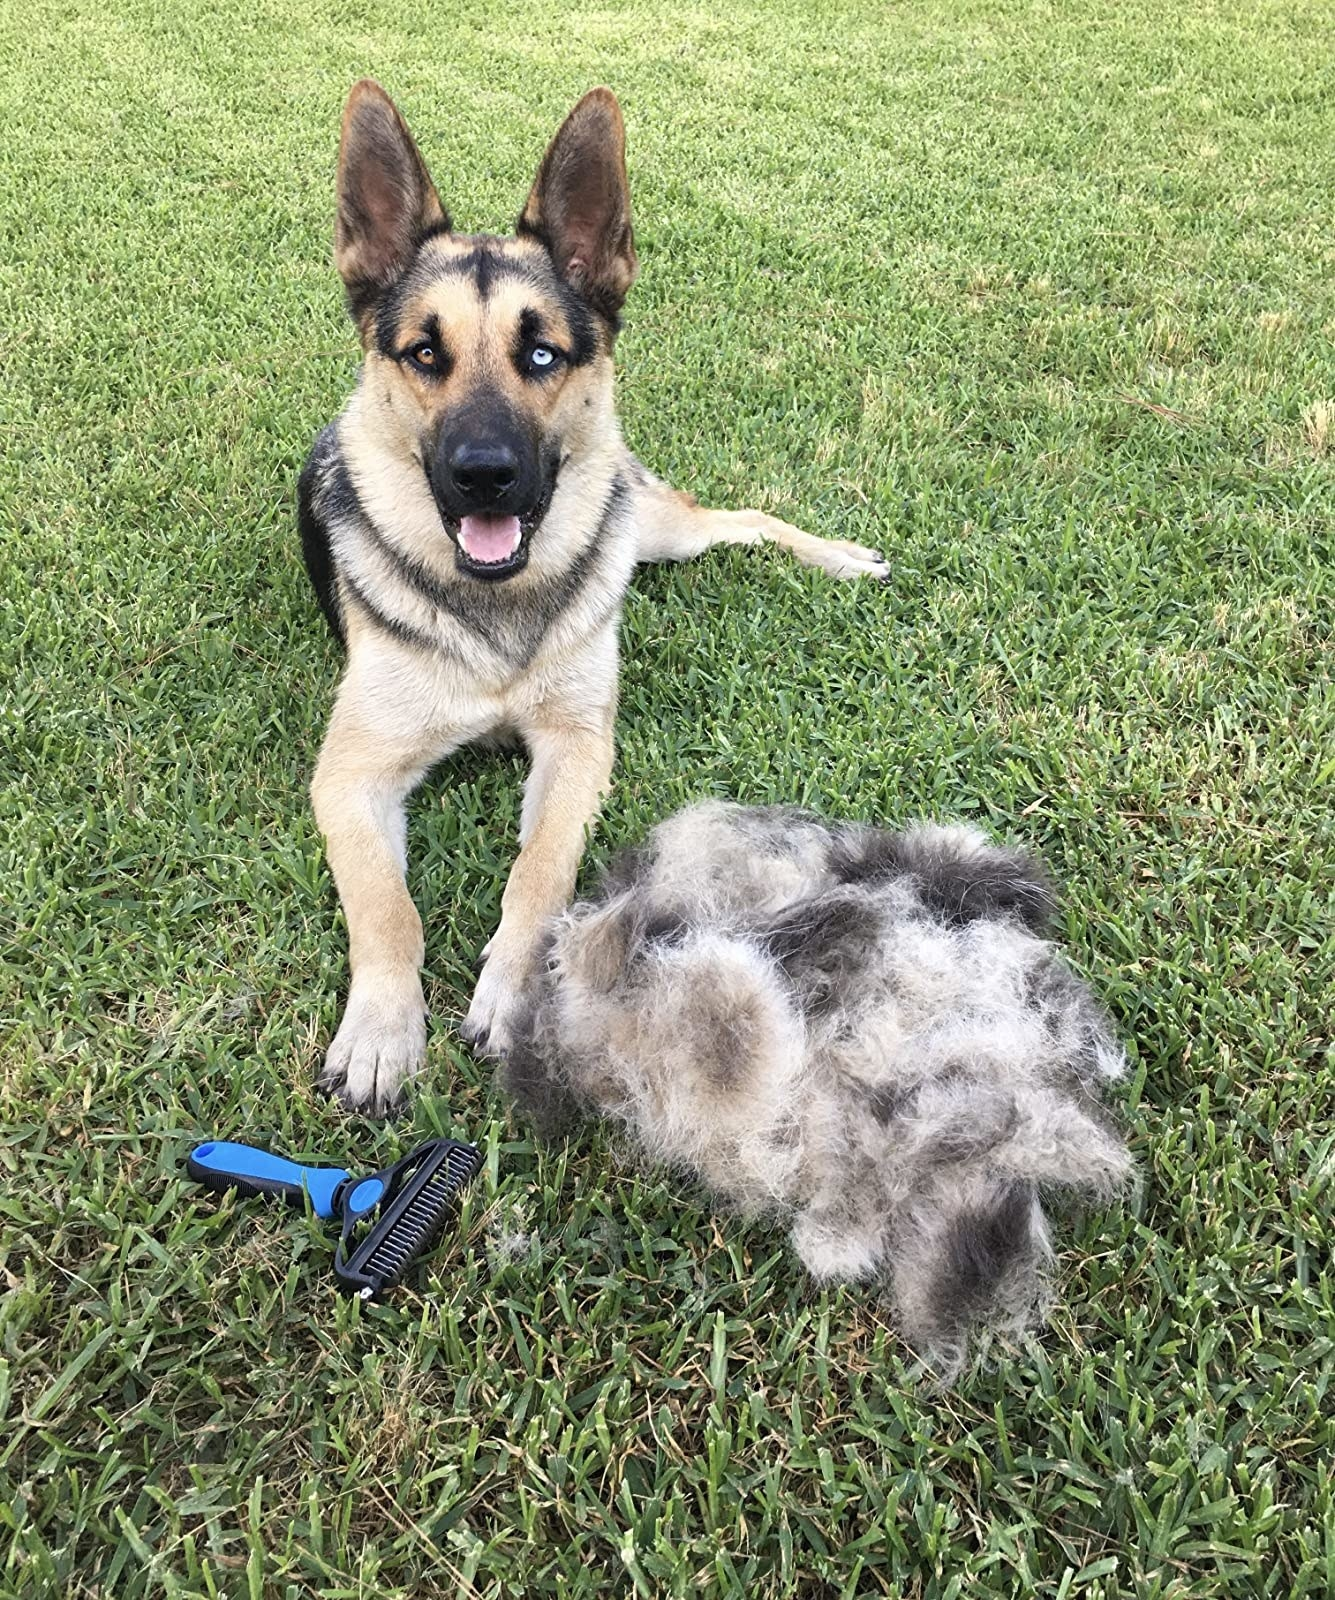 reviewer's german shepherd/husky mix sitting next to the brush and a huge pile of its fur